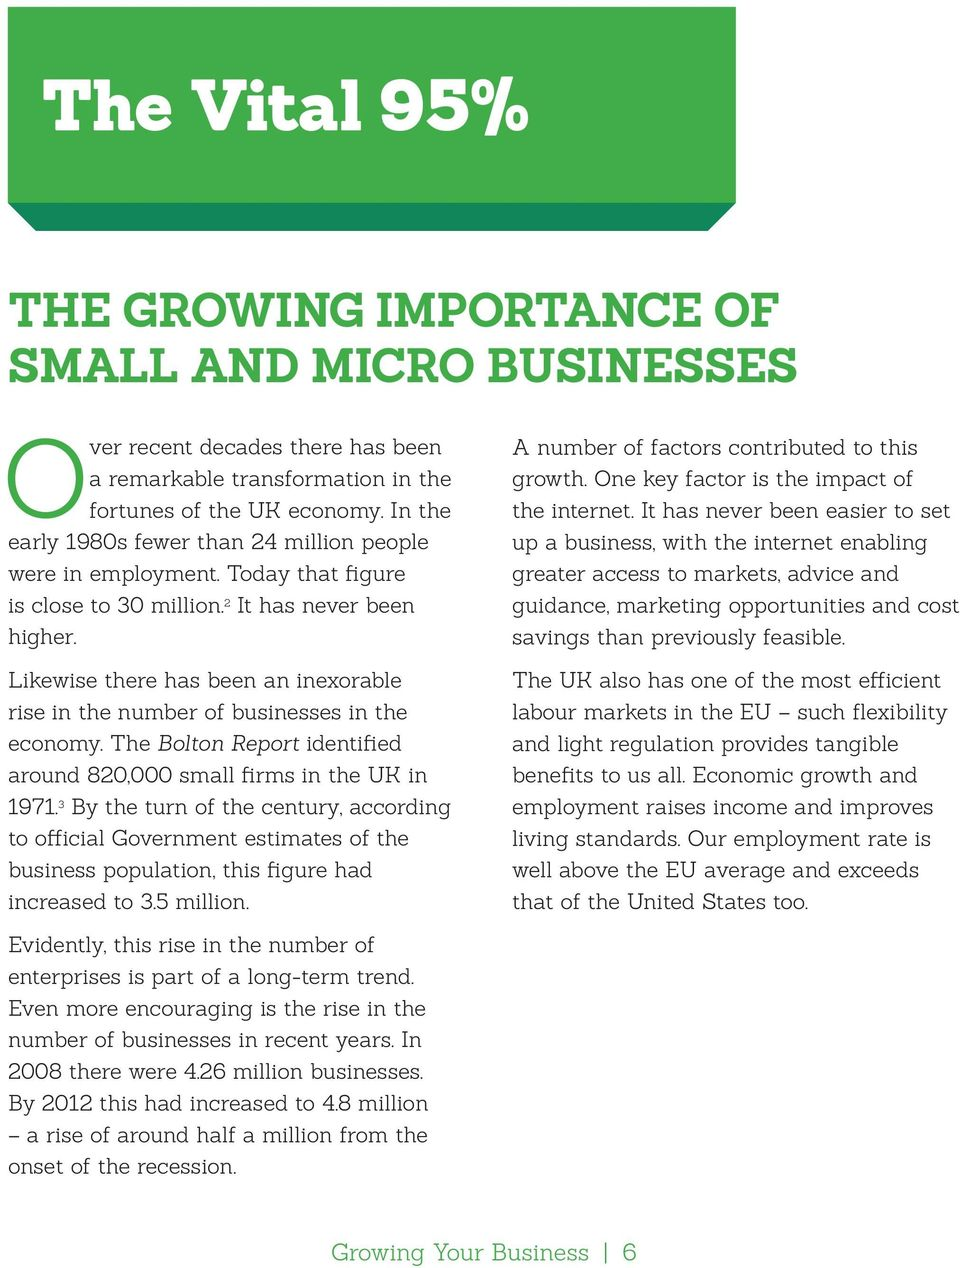 Likewise there has been an inexorable rise in the number of businesses in the economy. The Bolton Report identified around 820,000 small firms in the UK in 1971.